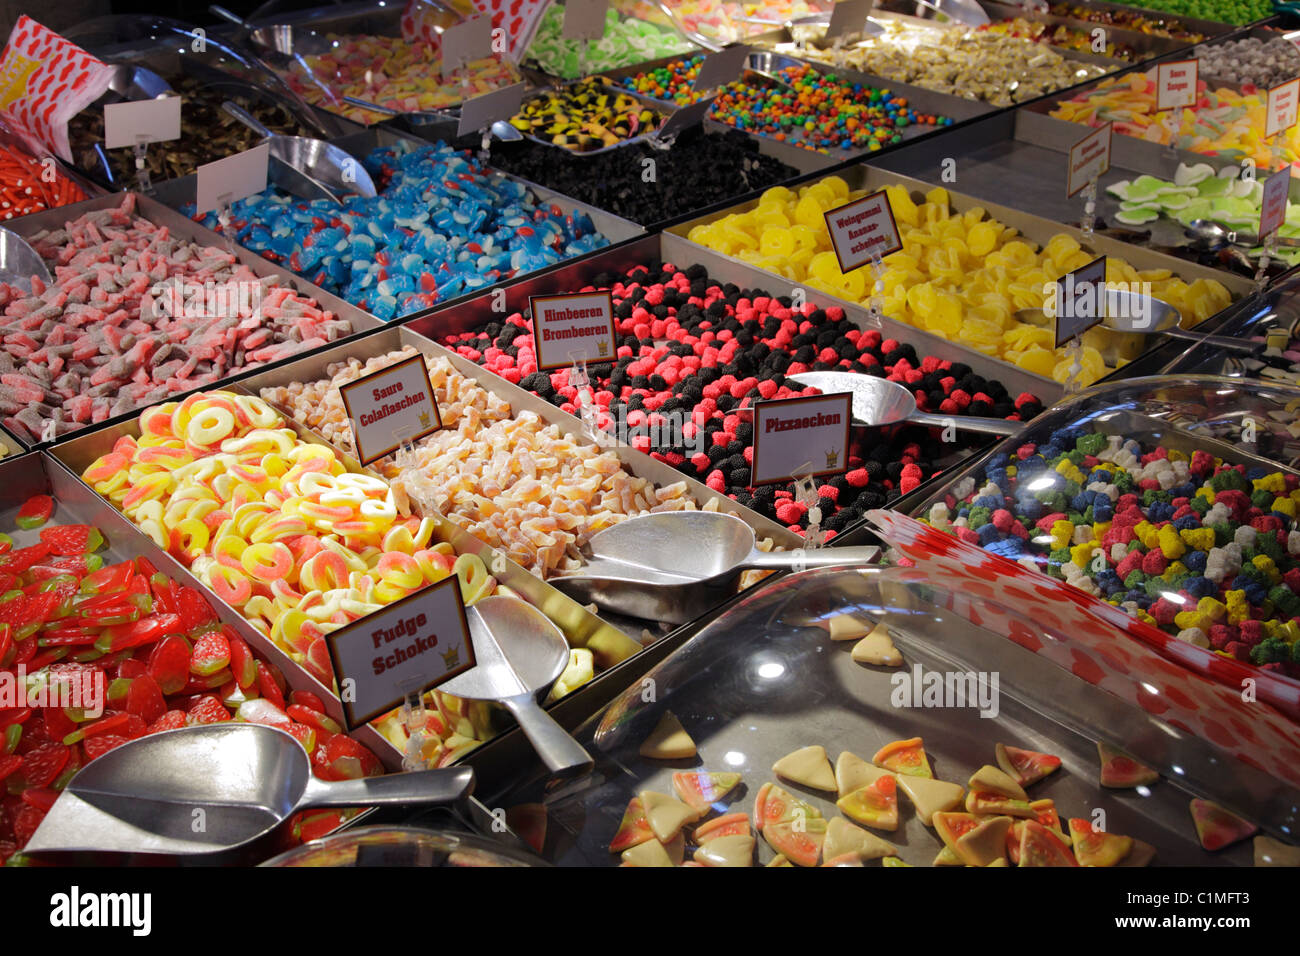 pick and mix jelly sweets at market - Stock Image